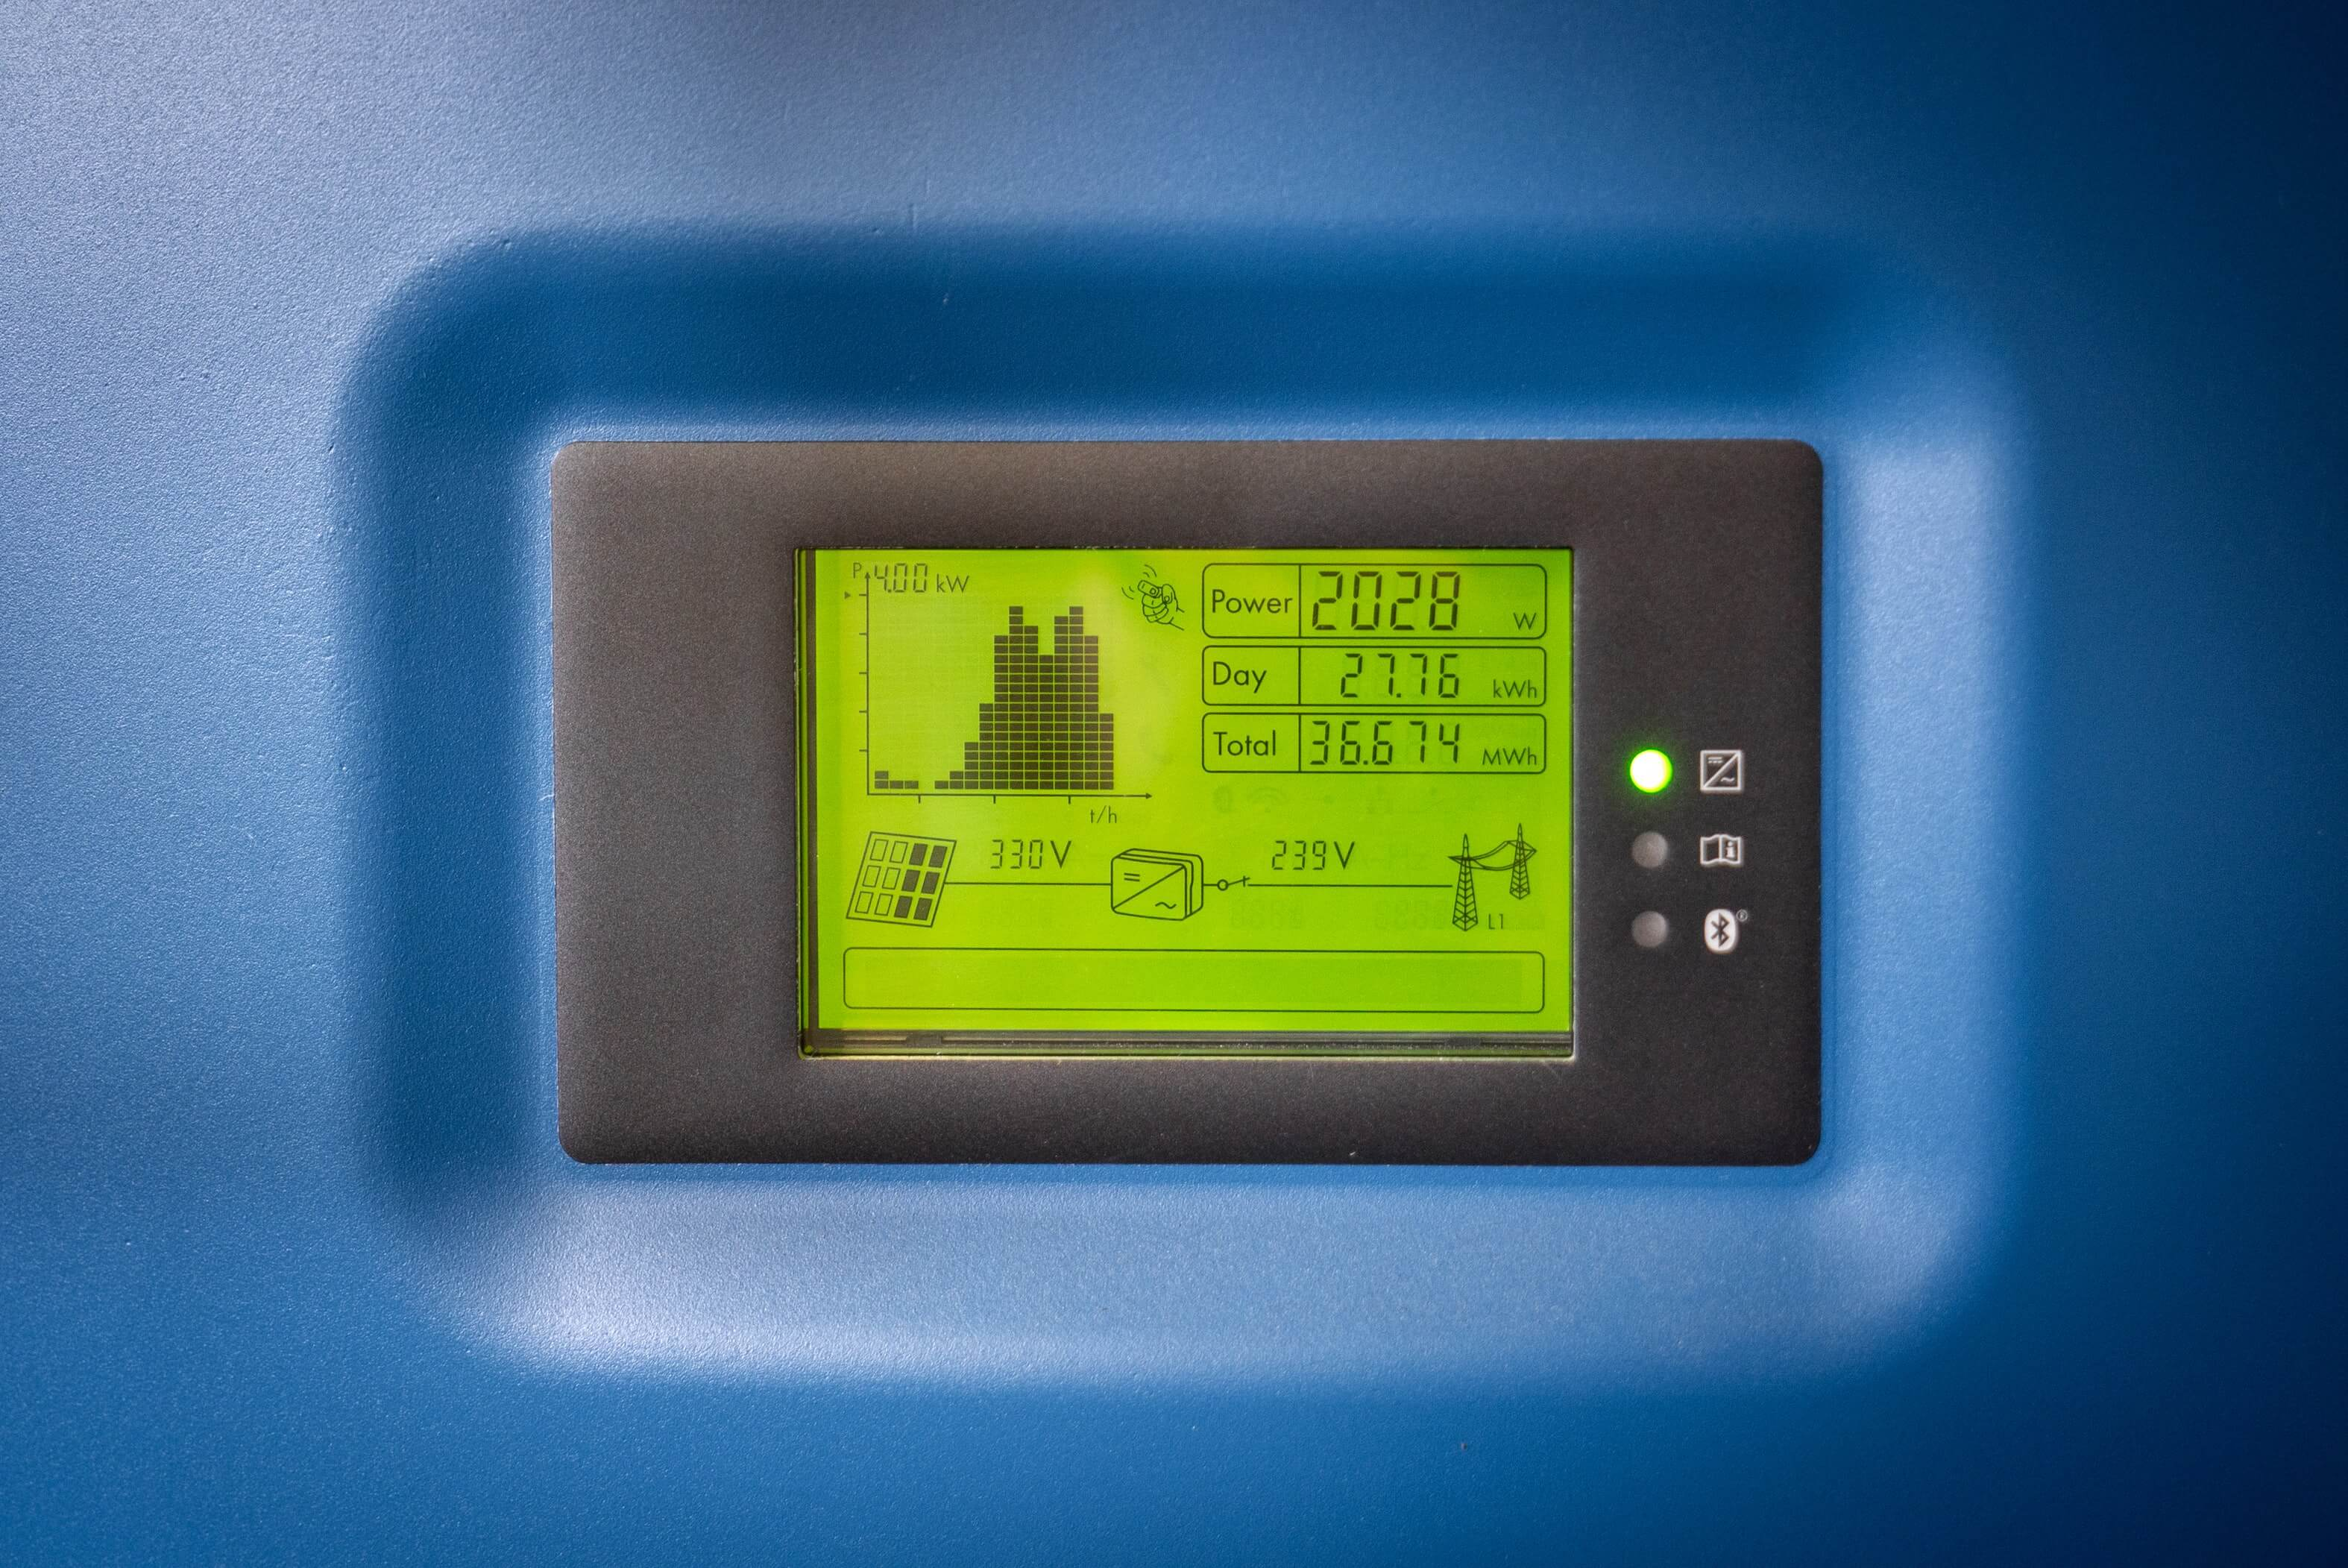 Electrical panel showing dashboard of solar power